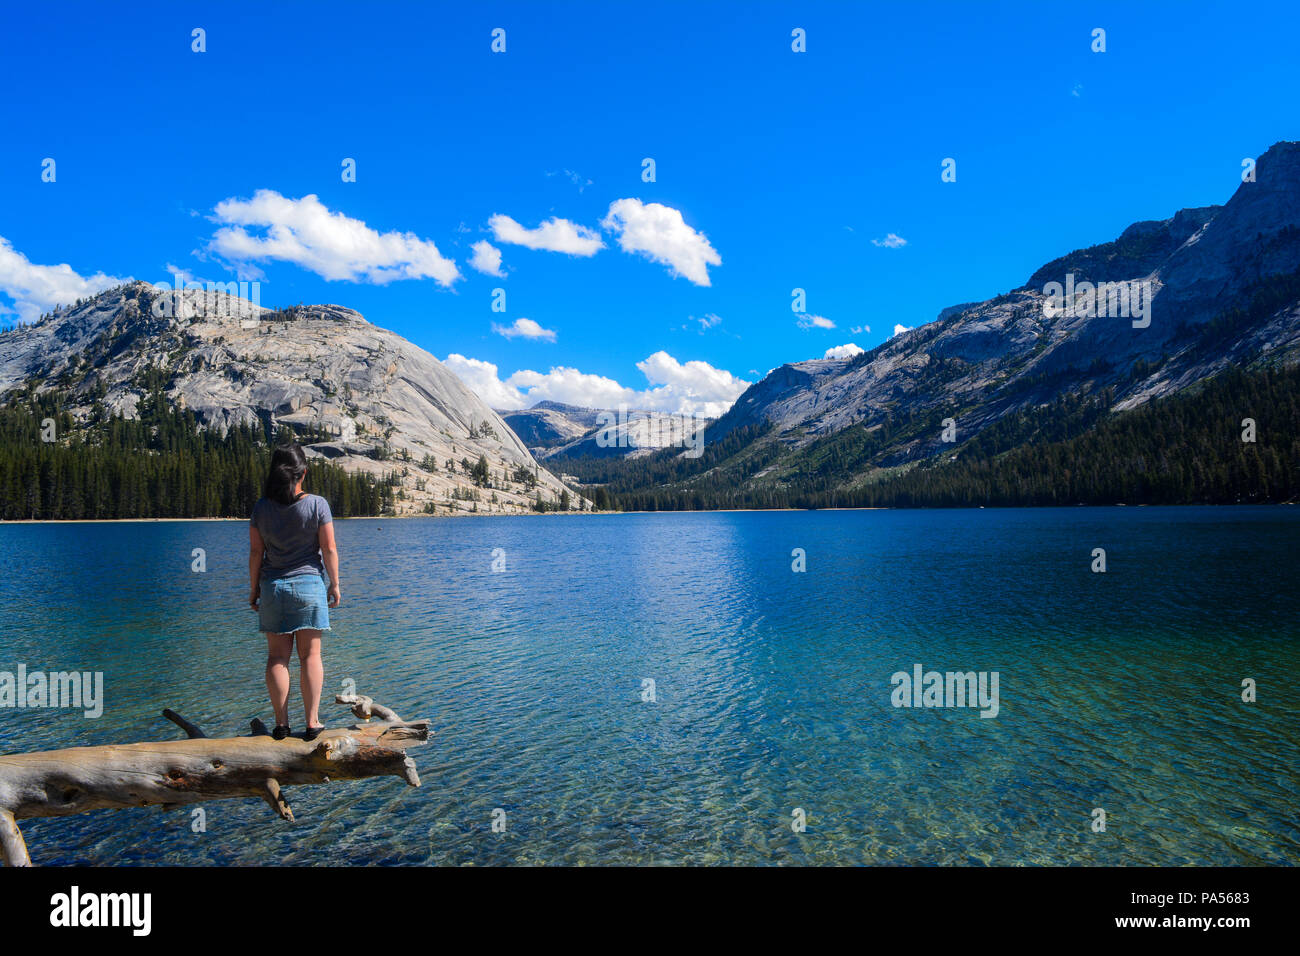 Tranquil optimism - Stock Image